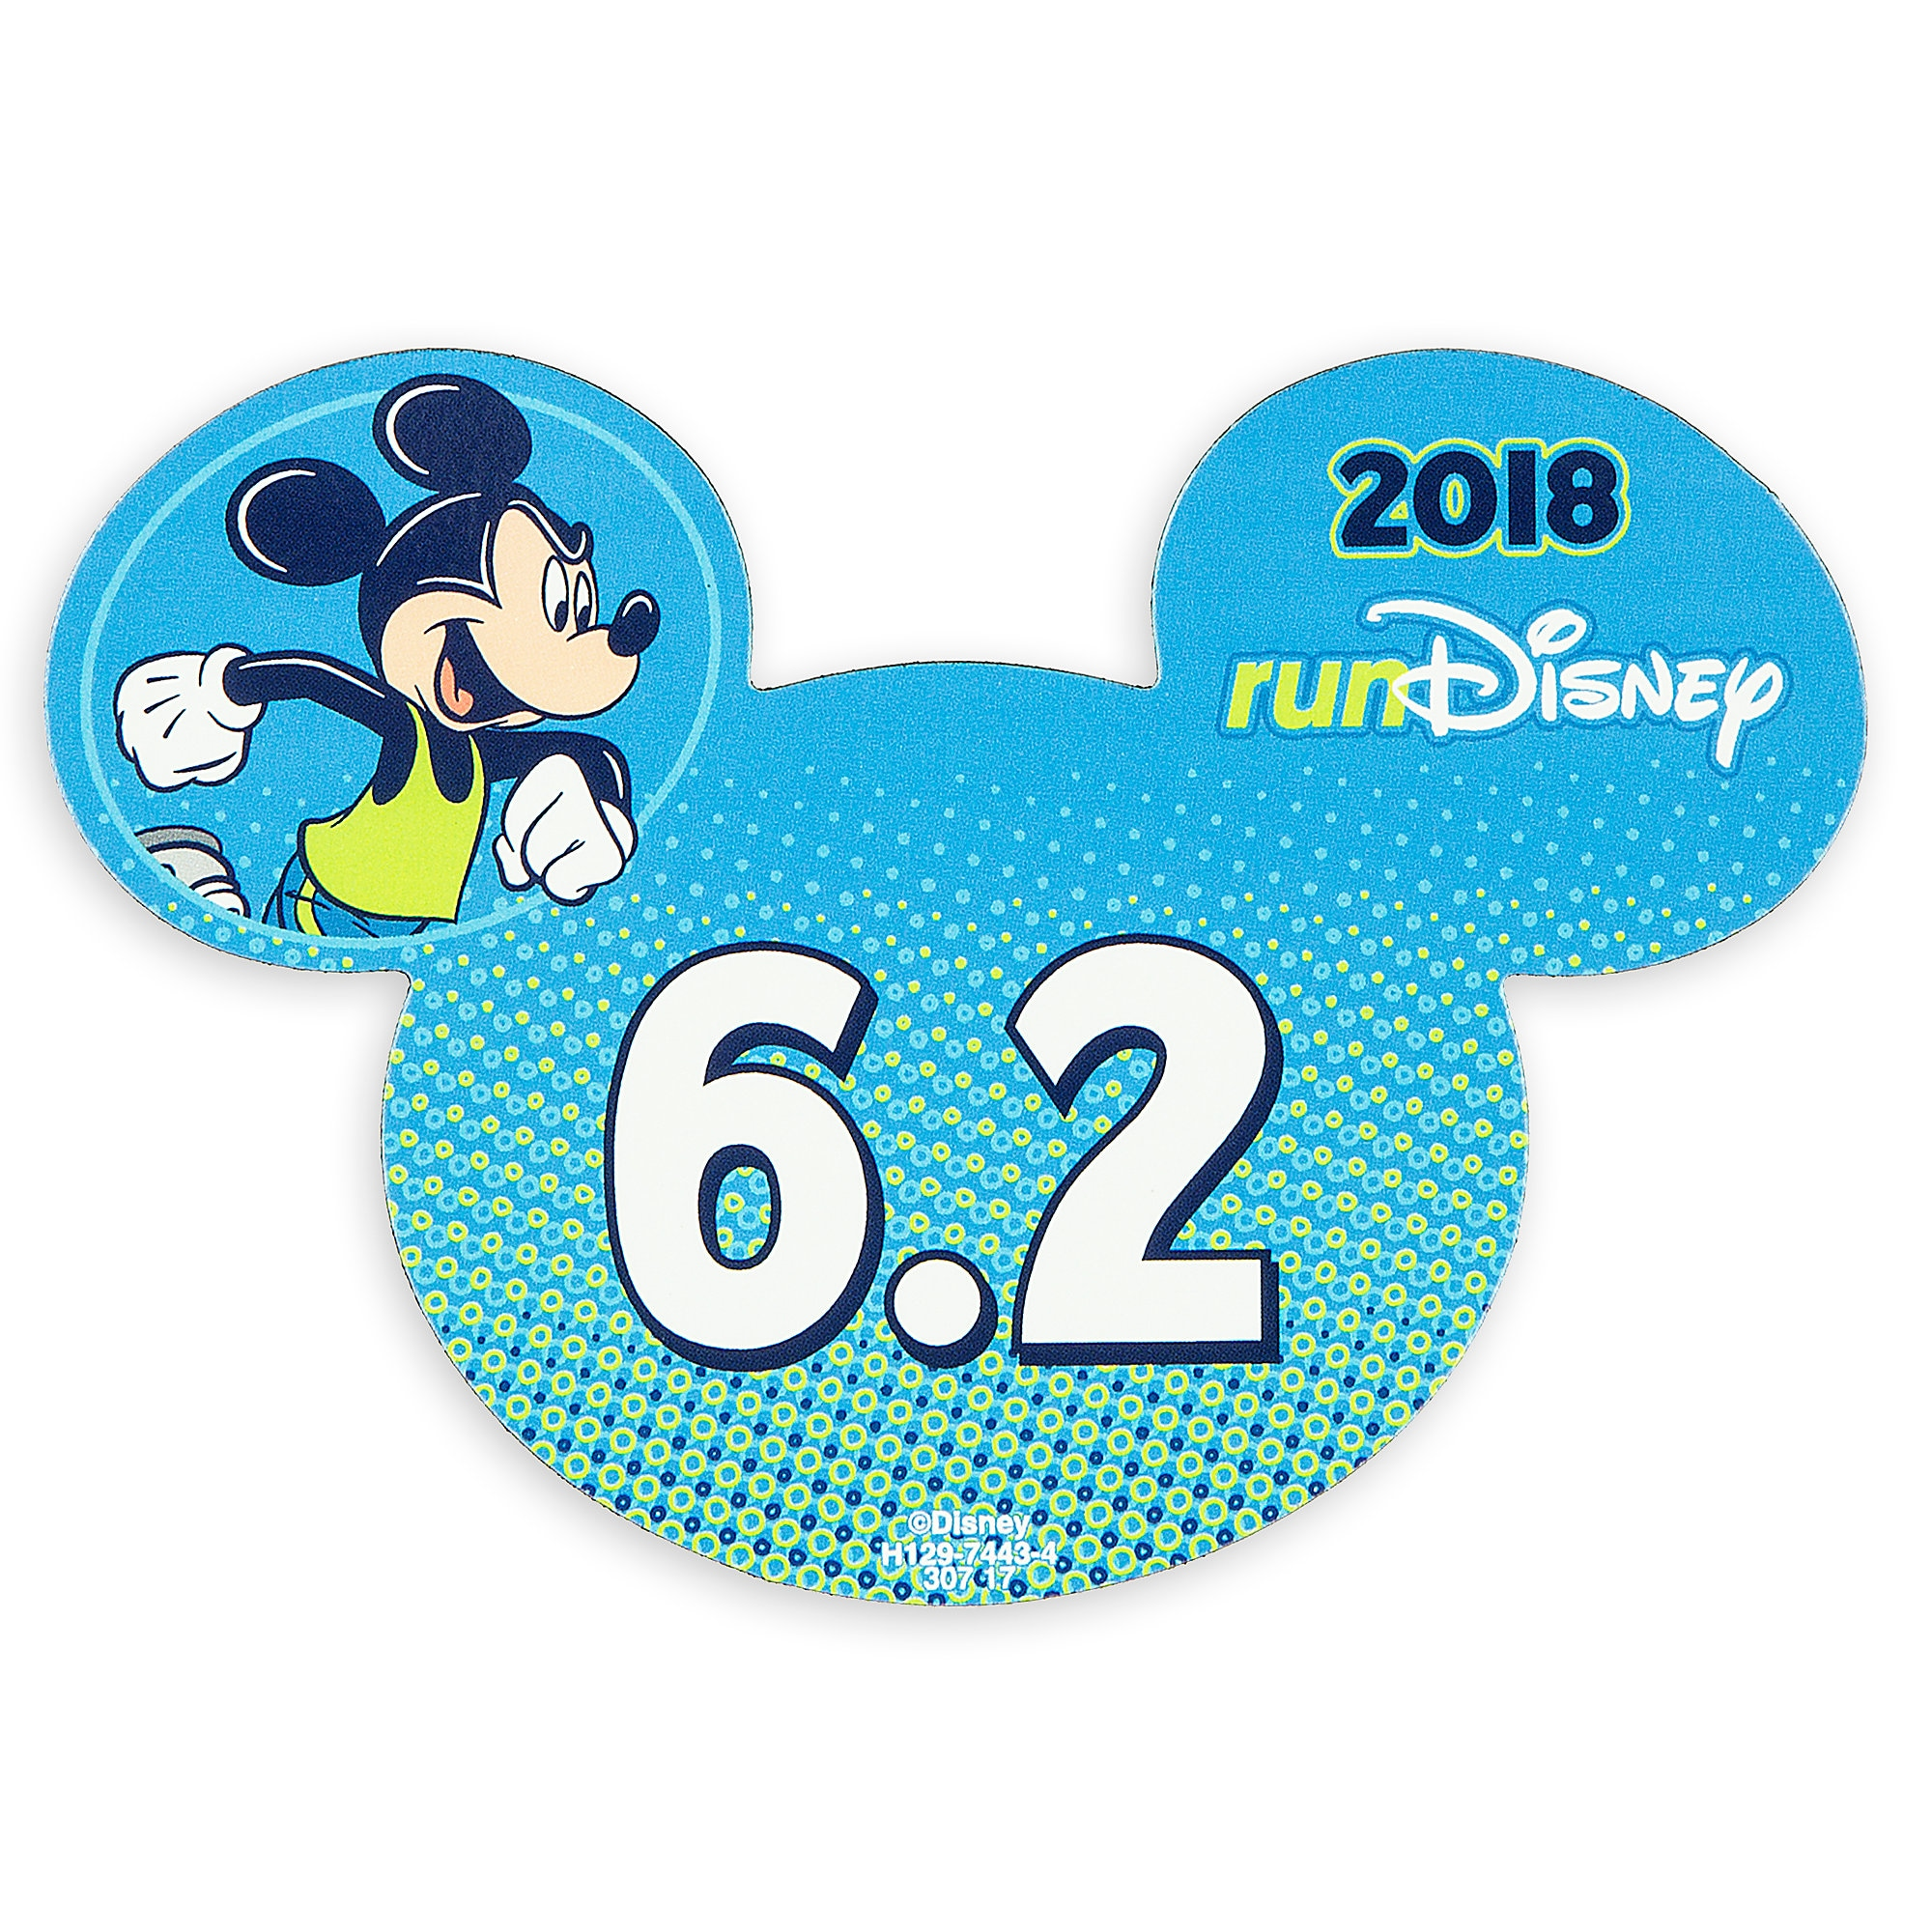 Mickey Mouse runDisney 2018 Magnet - 6.2